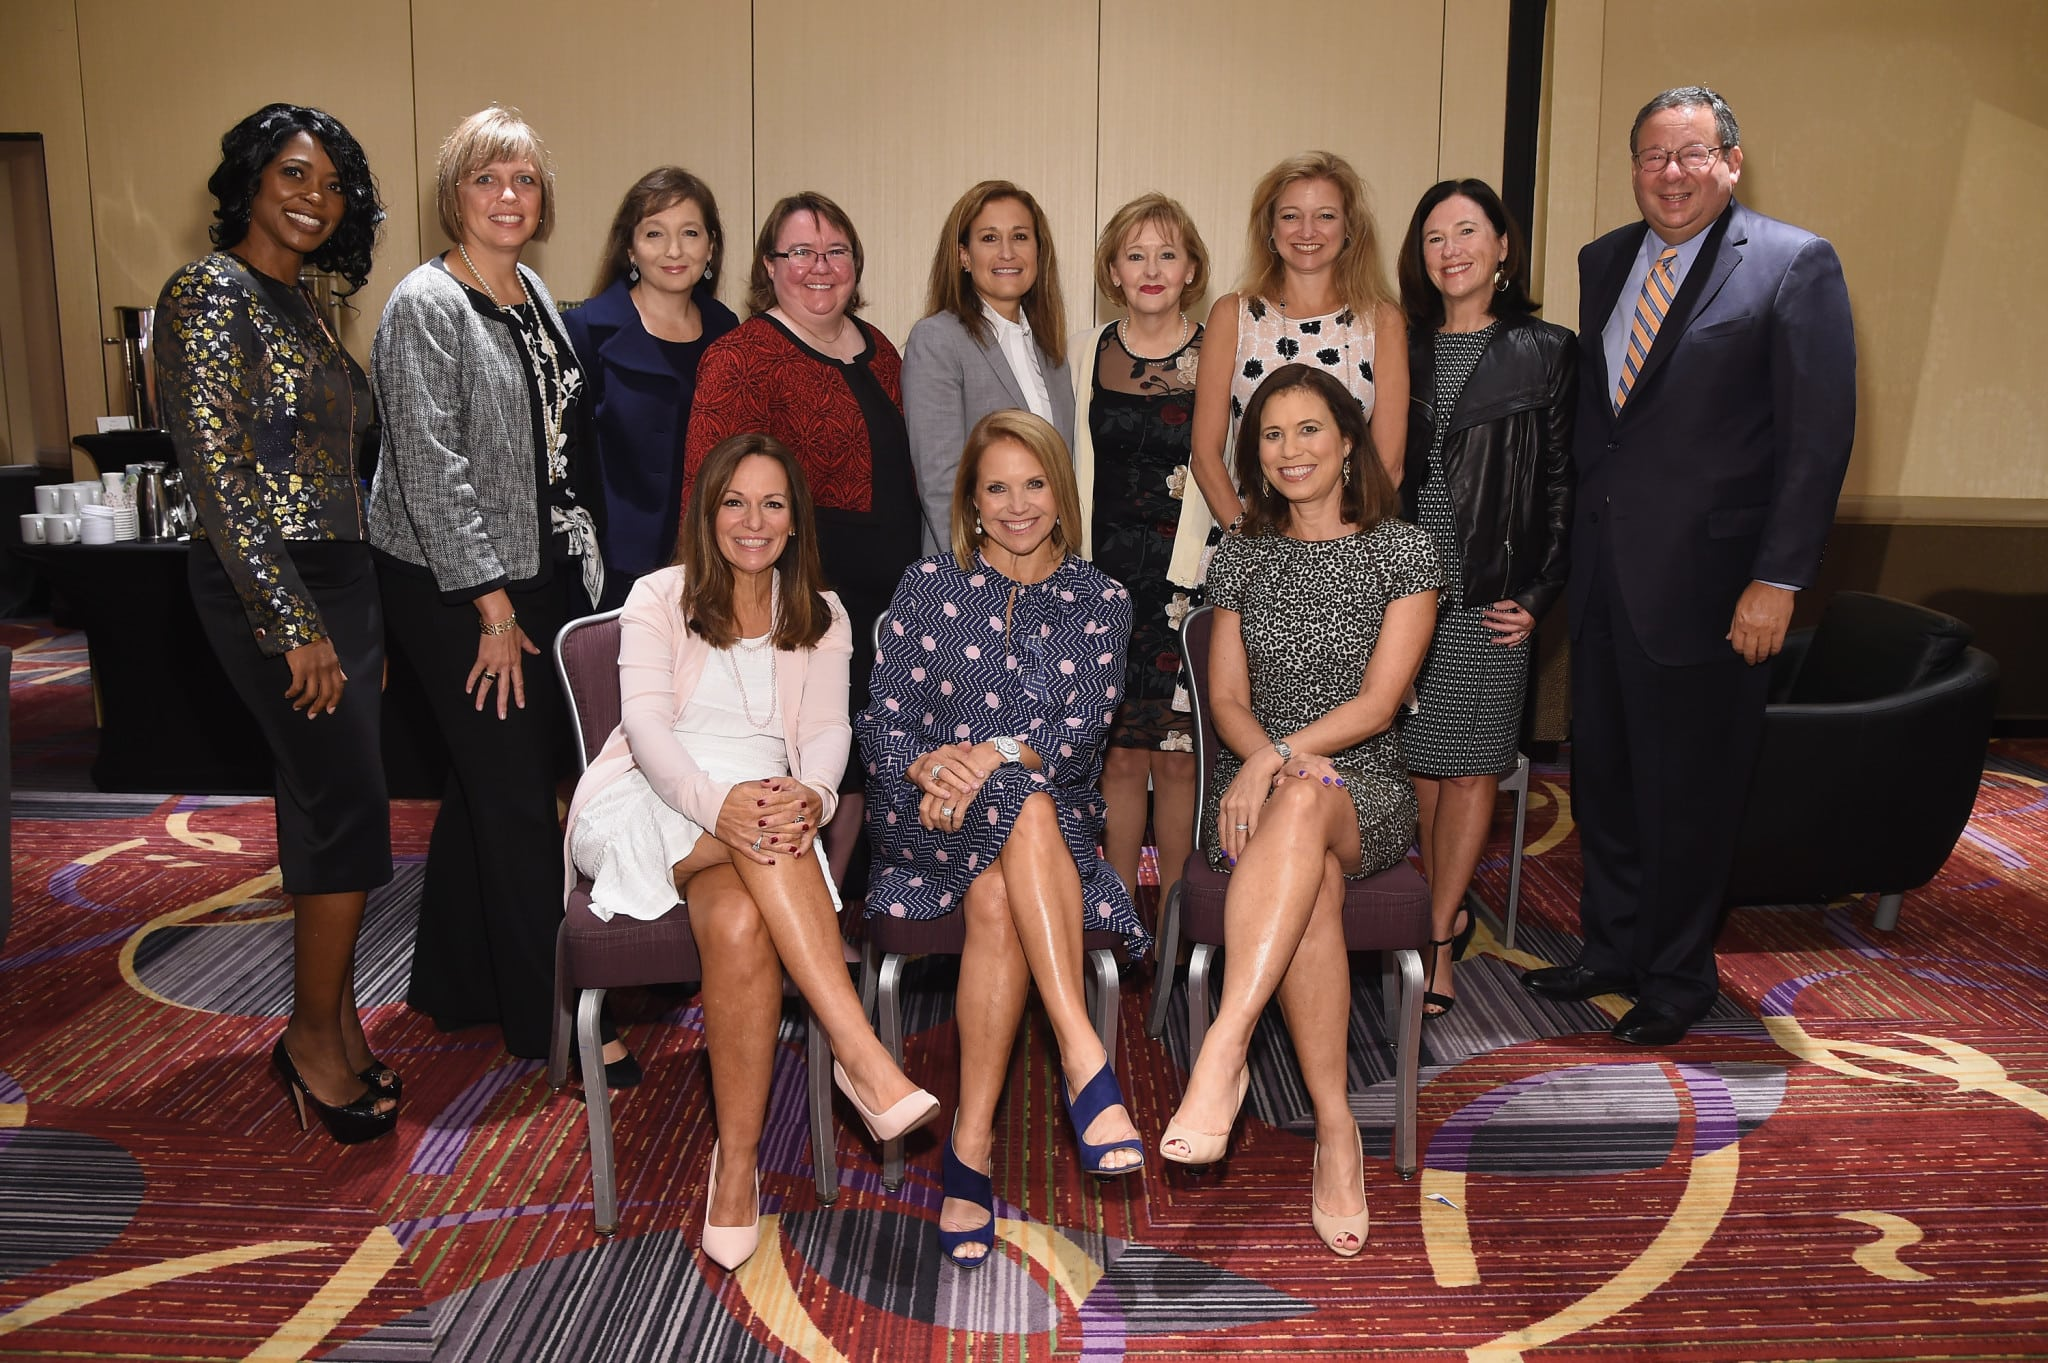 (L-R) Front Row: Maria Brennan, CAE, President & CEO, WICT; Katie Couric, Award Winning Journalist & Bestselling Author; Joanne Lipman, Editor in Chief, USA Today & USA Today Network, Chief Content Officer, Gannett Back Row: Marva Johnson, Vice President, State Government Affairs - South Region, Charter Communications; Sandra K. Howe, SVP & General Manager, Consumer Products Group, ARRIS Group, Inc.; Kathleen O'Reilly, Senior Managing Director, Accenture; Denise Gough, VP, Business & Legal Affairs, Scripps Networks Interactive; Michele Parks, VP, Talent Management, Cox Communications; Martha Soehren, Chief Talent Development Officer & SVP, Comcast; Karen Buchholz, SVP, Administration, Comcast; Mary McLaughlin, Regional SVP, Beltway Region, Comcast; and David L. Cohen, Senior Executive Vice President & Chief Diversity Officer, Comcast Corporation at the WICT Leadership Conference. (Photo by Larry Busacca/Getty Images)